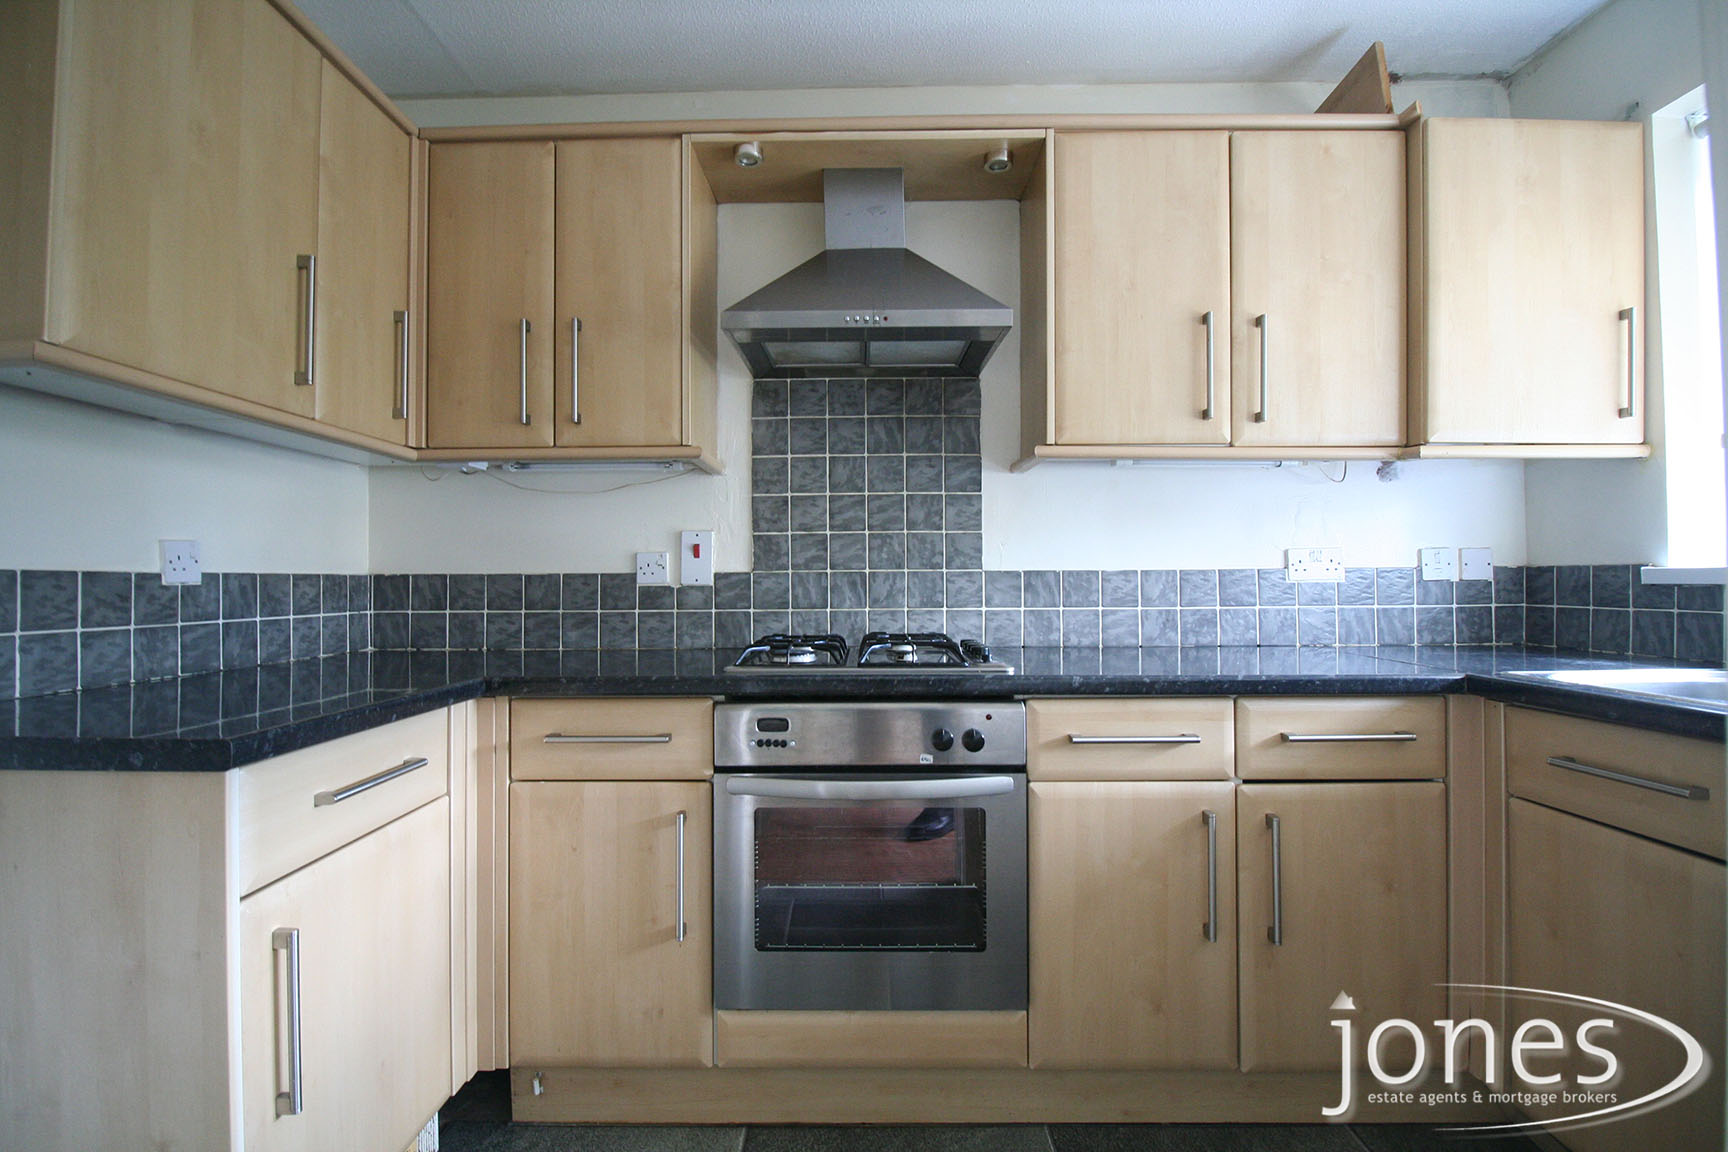 Home for Sale Let - Photo 04 Gatesgarth Close,  Bakers Mead, Hartlepool, TS24 8RB